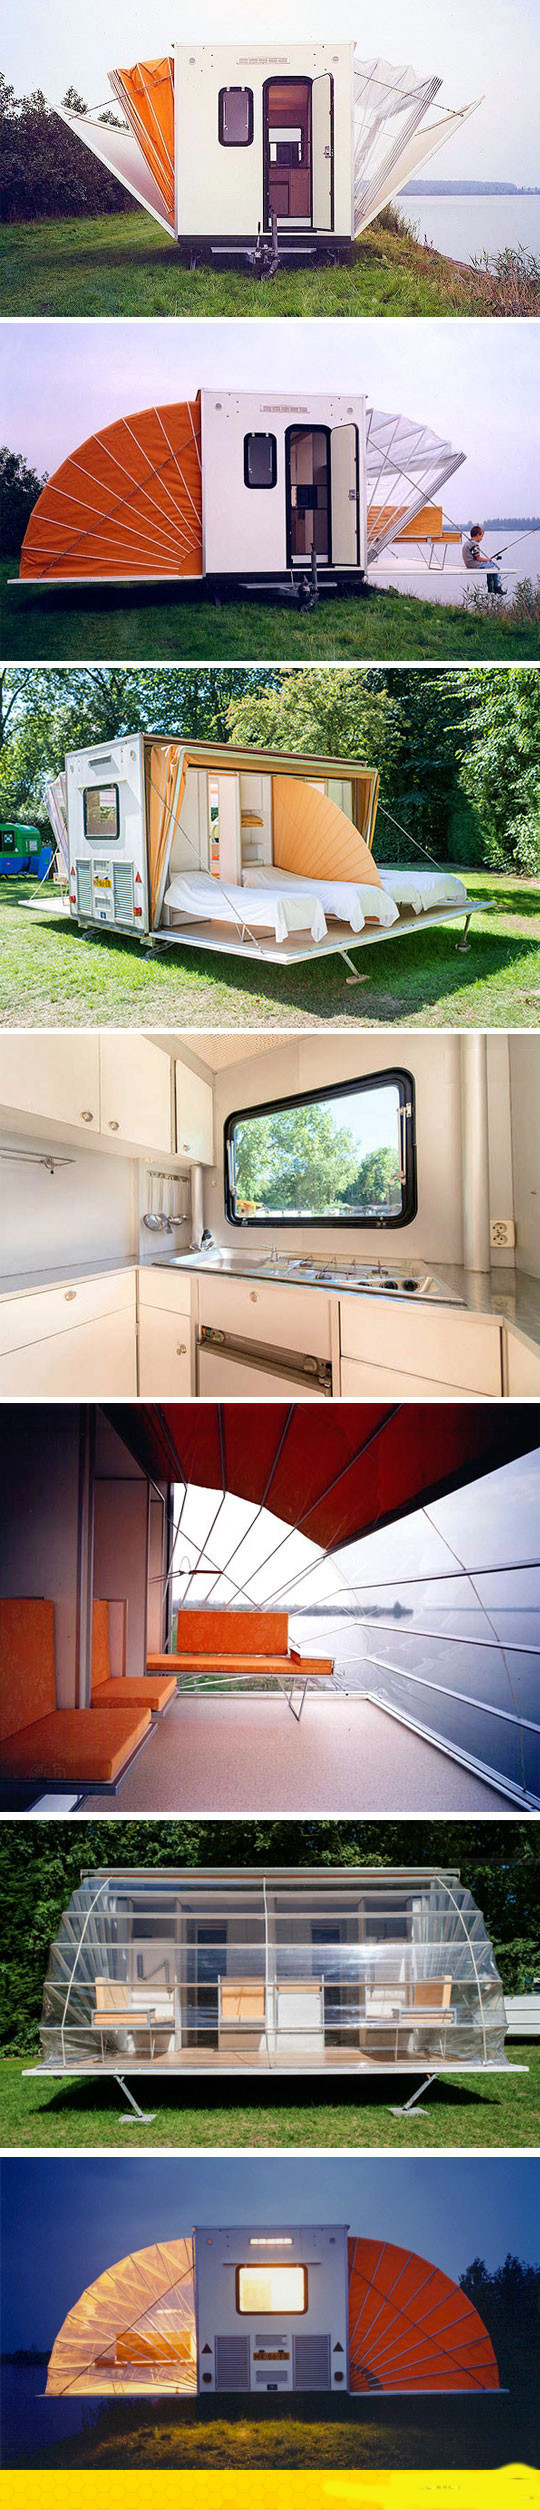 cool-camper-house-opening-beds